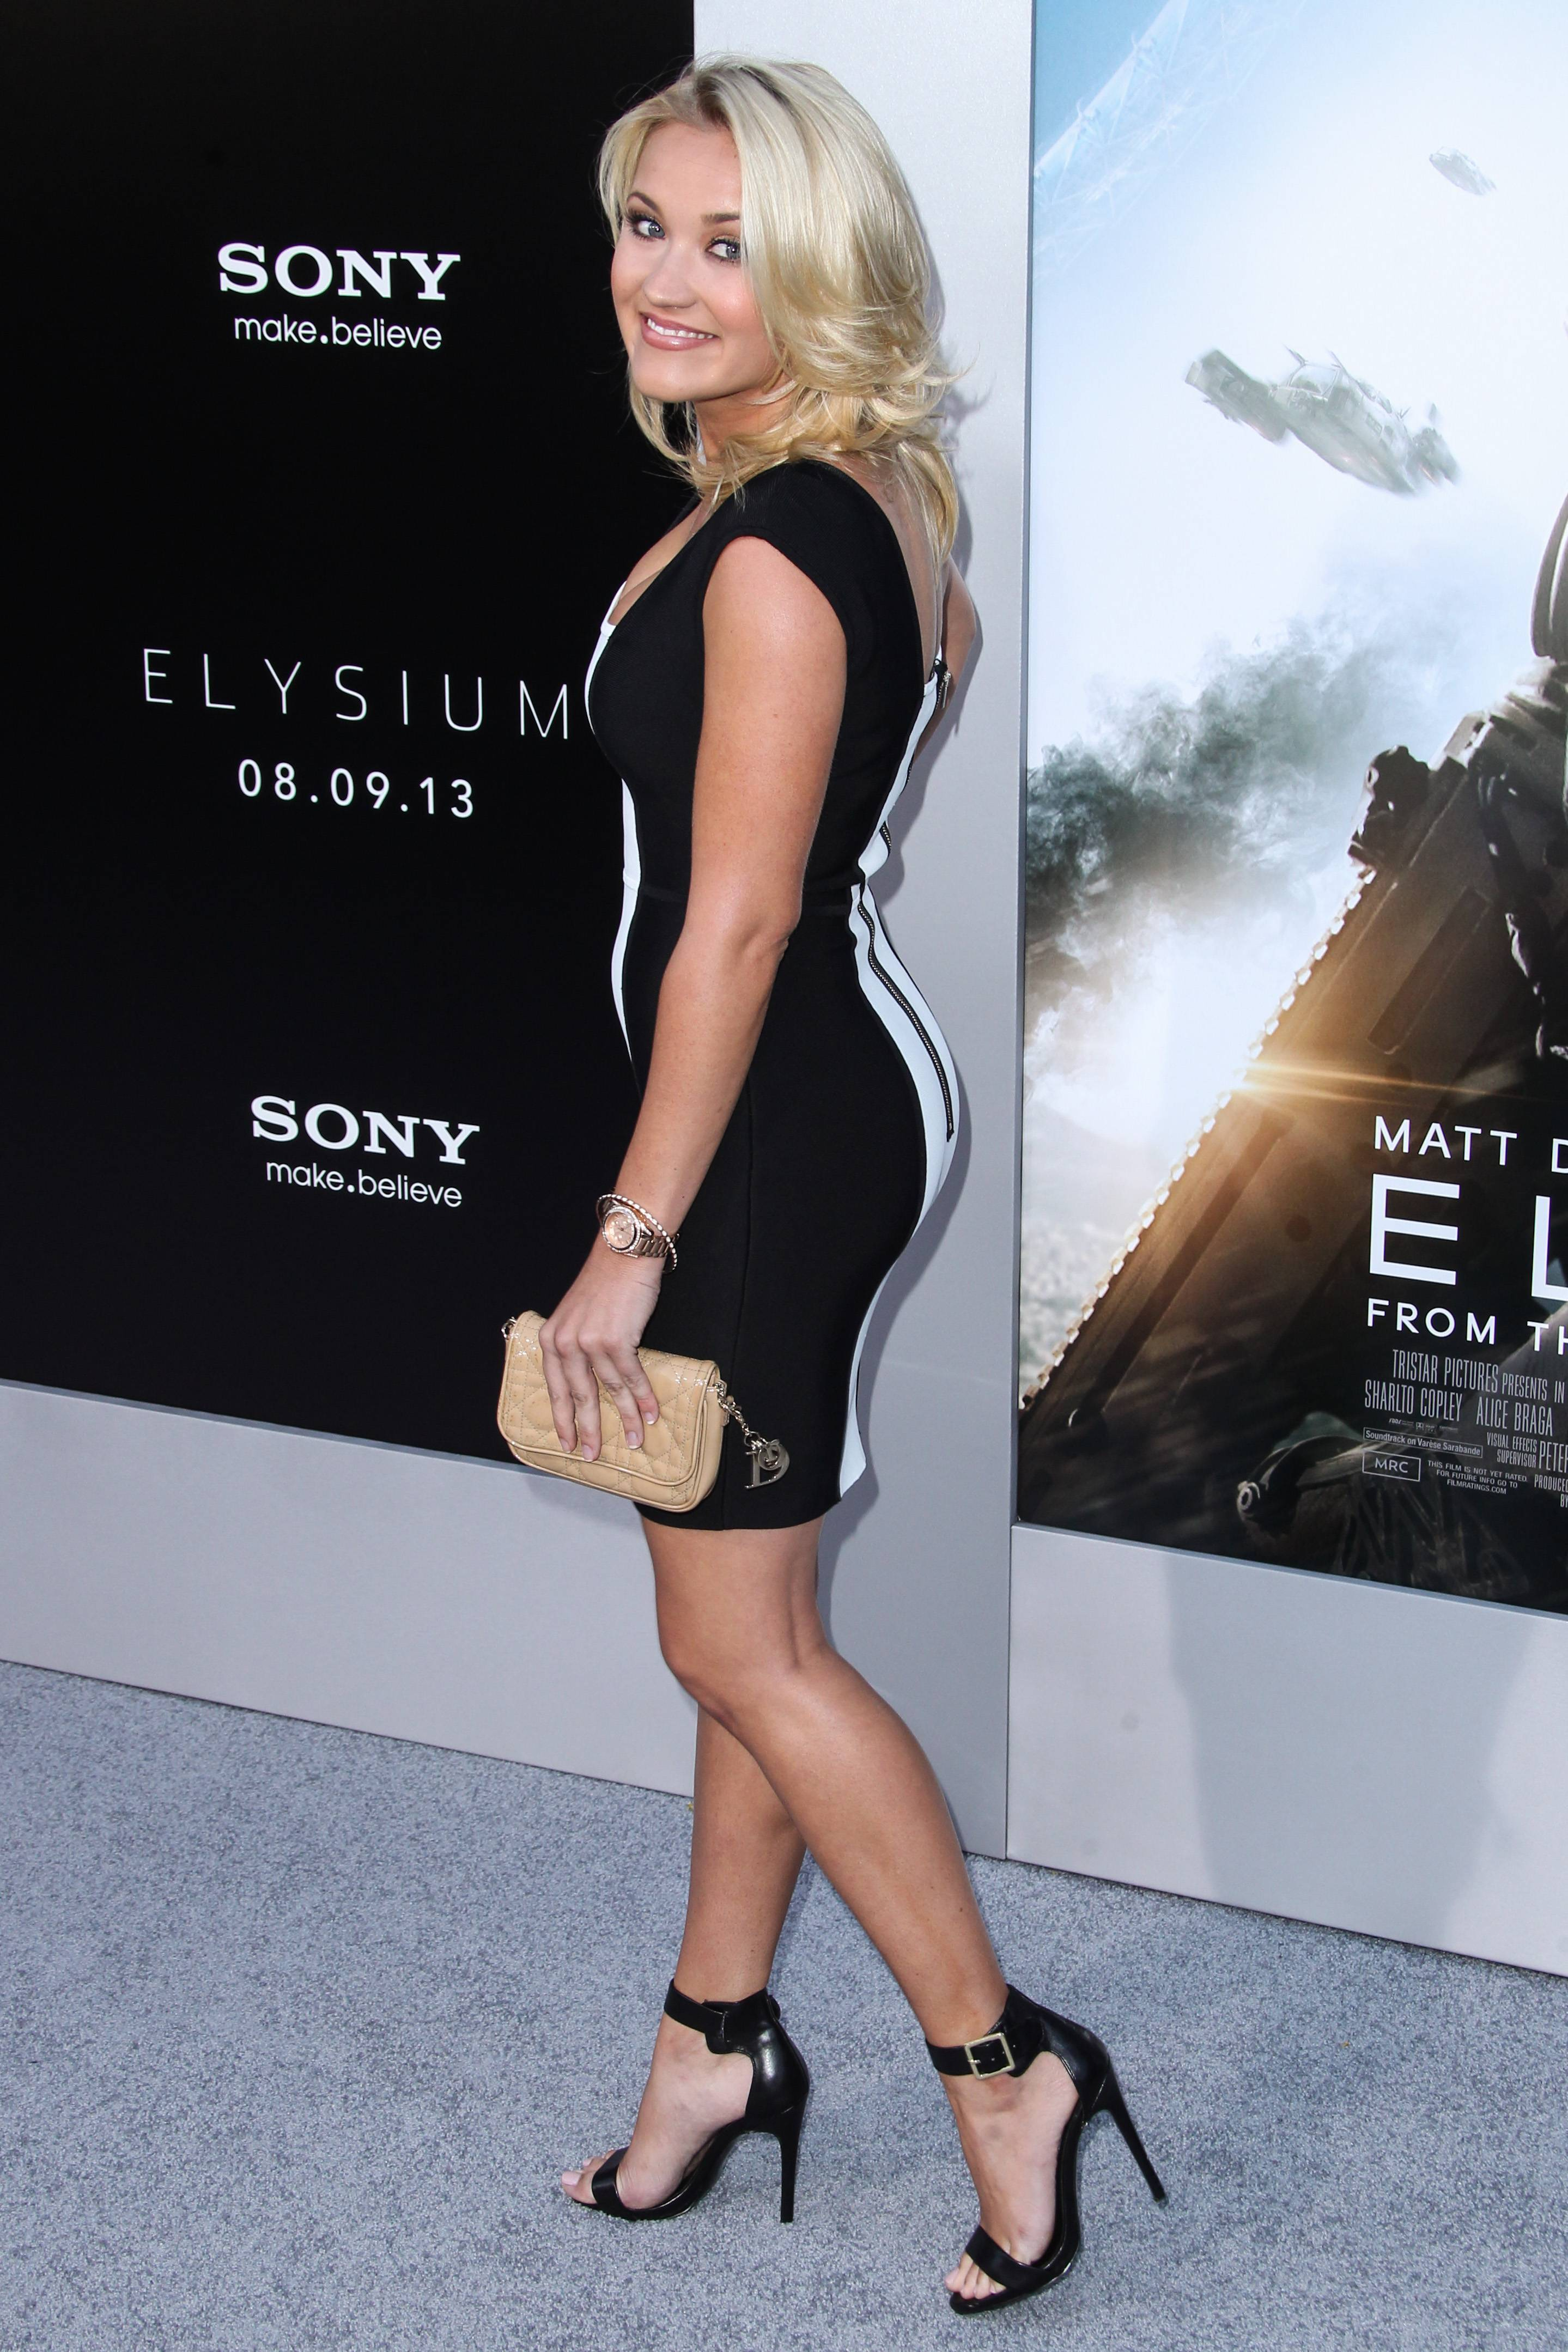 Emily Osment Hottest Bikini Photos Leaked Topless Images Gallery